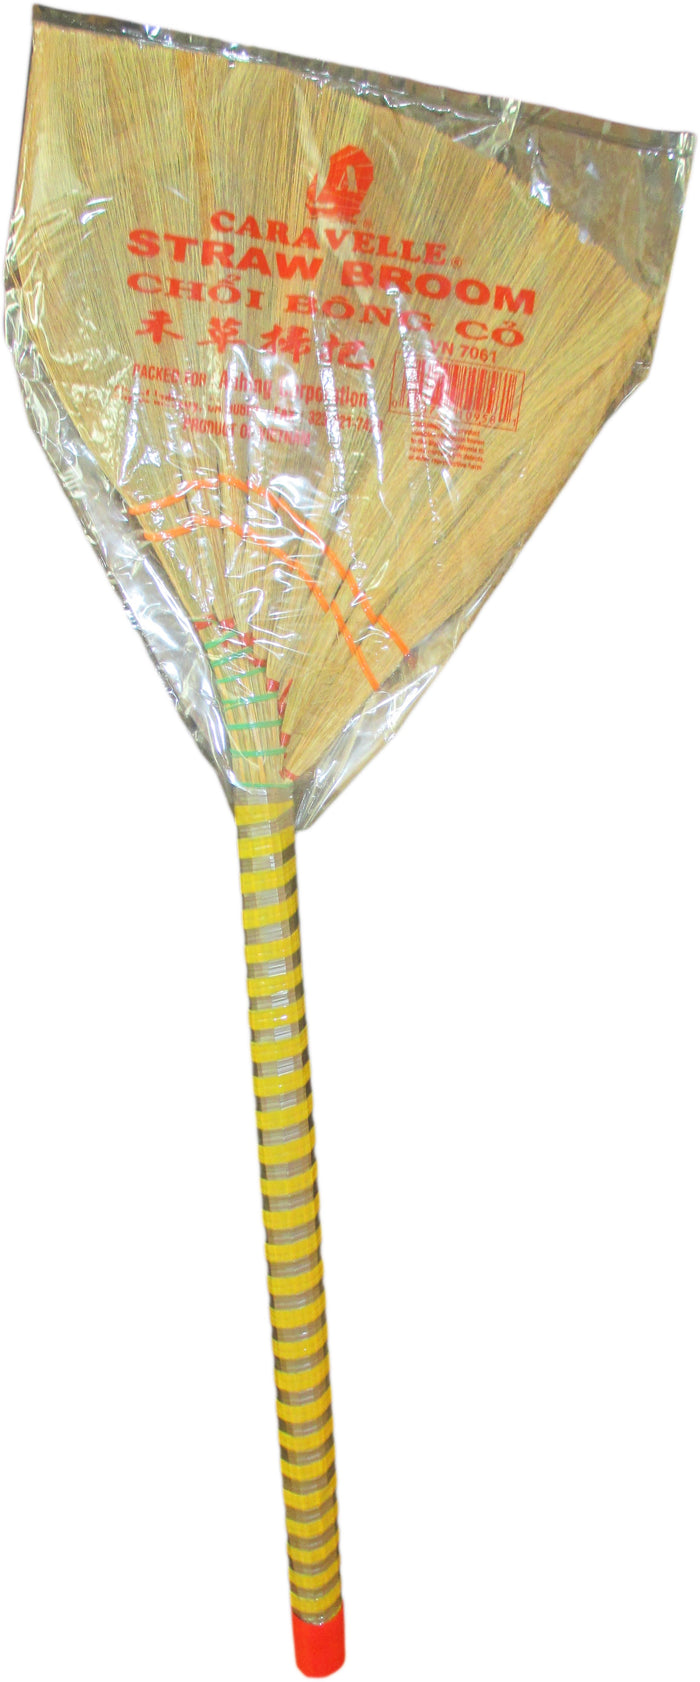 "Caravelle - Straw Whisk Broom - 12"" Head Width / 37"" Overall Length - Asiangrocery2yourdoor"